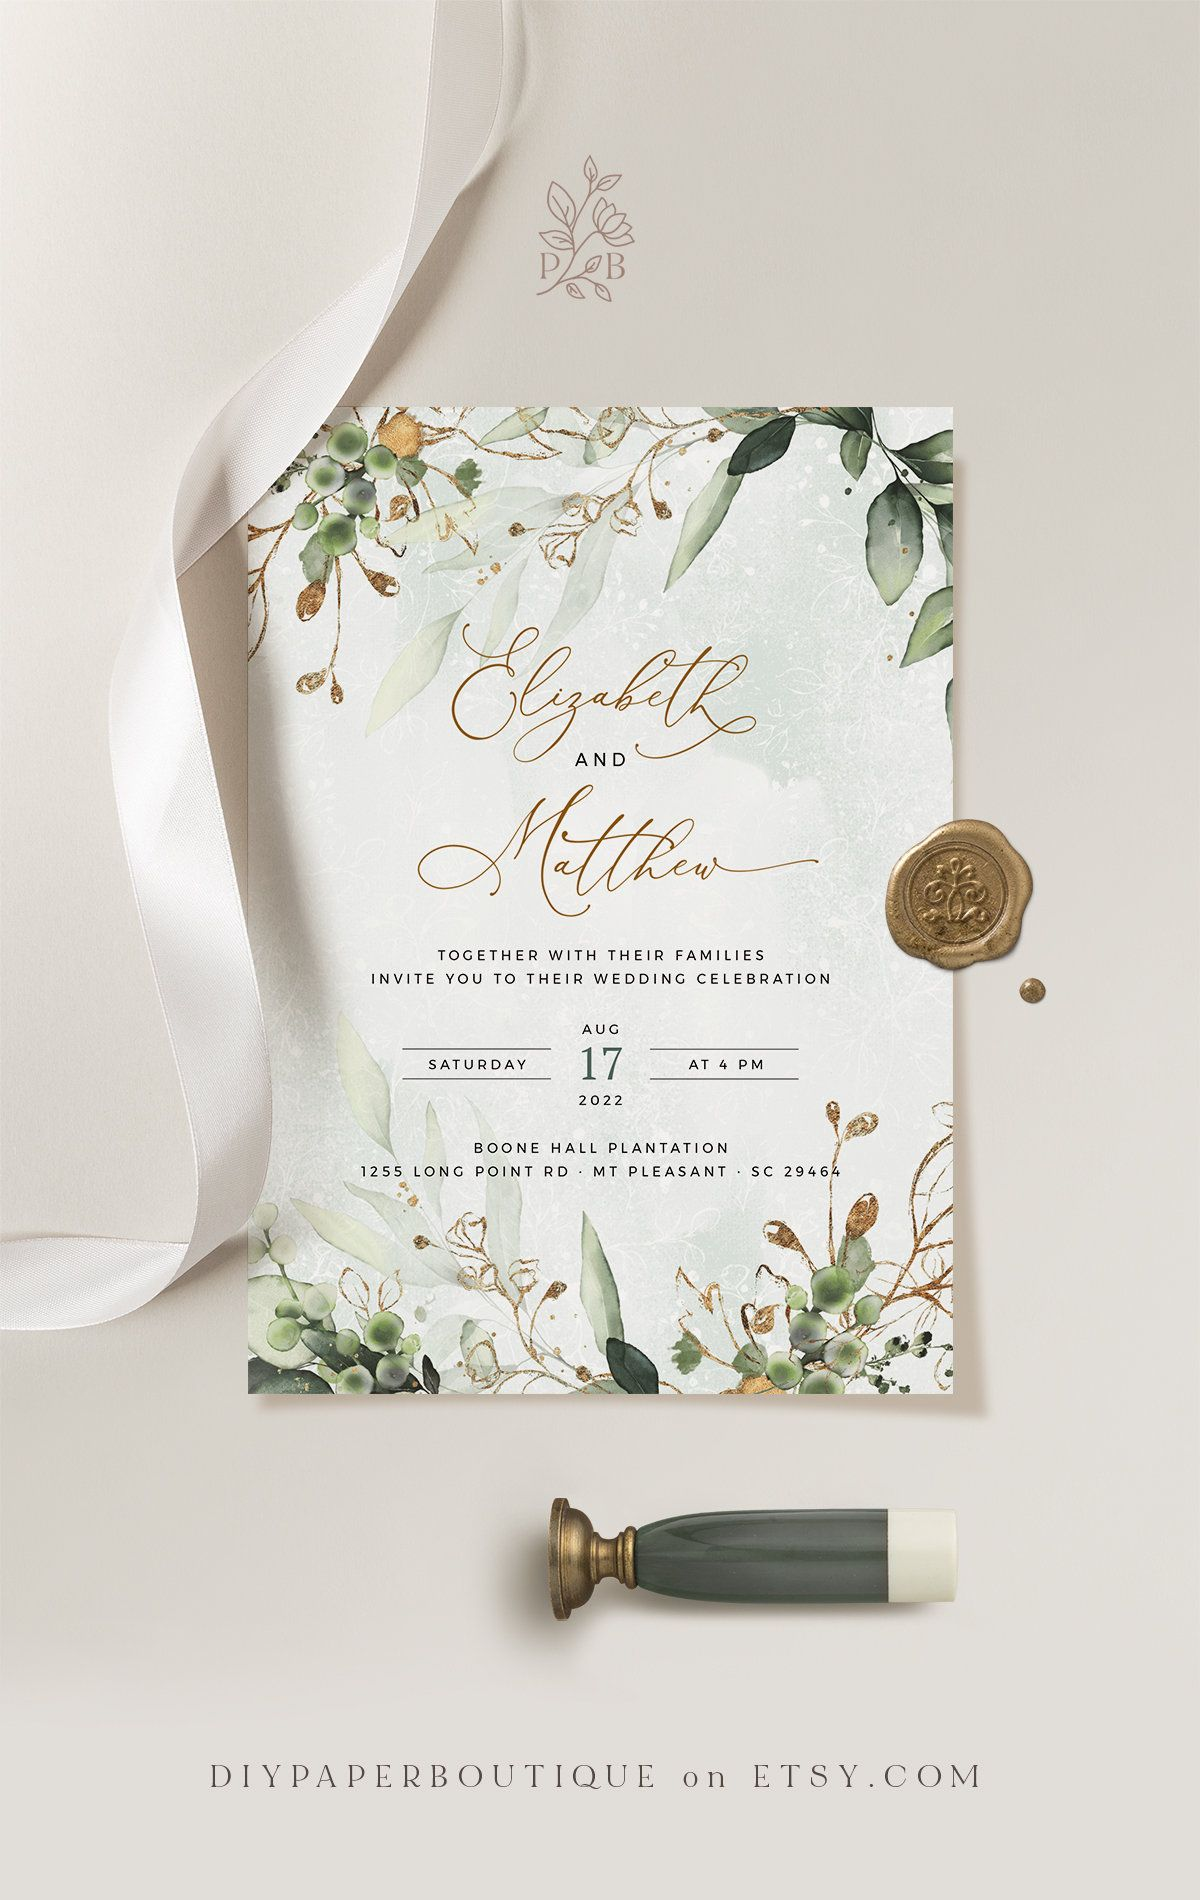 Cleo Faux Gold Wedding Invitation Template Boho Wedding Invite Template Wedding Invitation Invitation Template Download Invites Set Wedding Invitation Templates Wedding Invitations Boho Gold Wedding Invitations